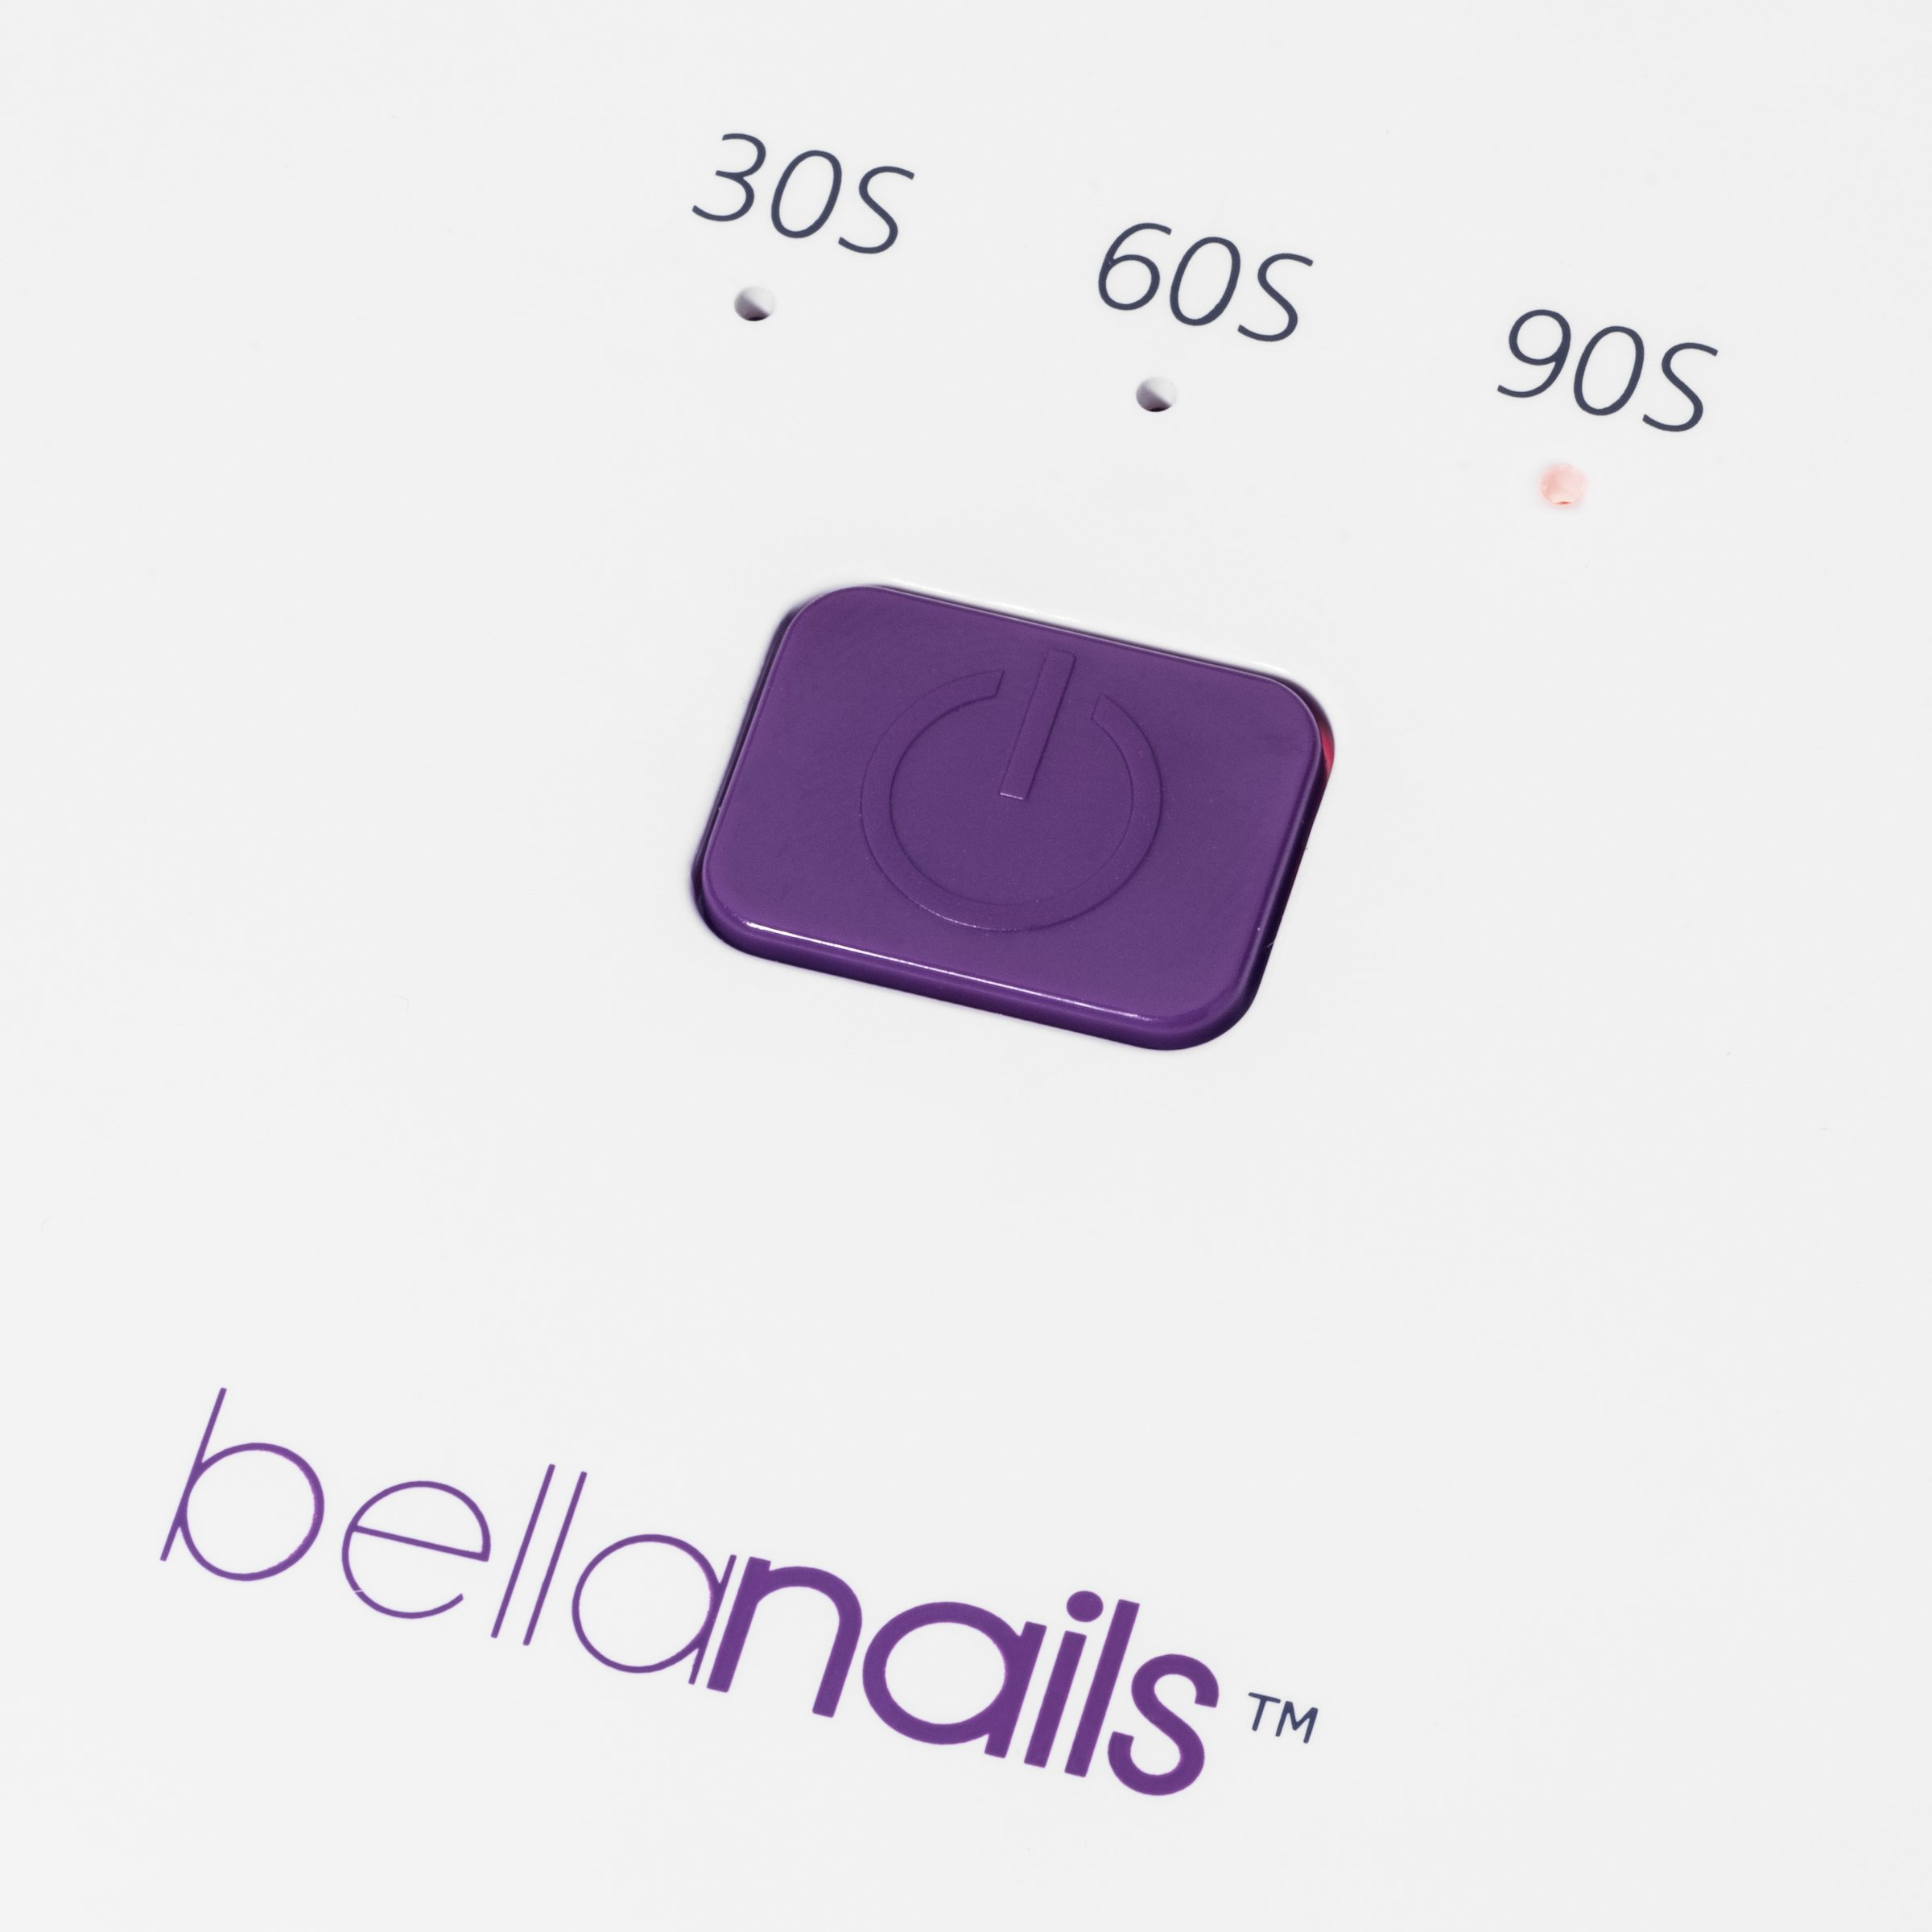 BellaNails Professional 21W LED Nail Lamp, Removable Base Tray, Auto On/Off Sensor, Works With All Gel Nail Polishes by BELLANAILS (Image #5)